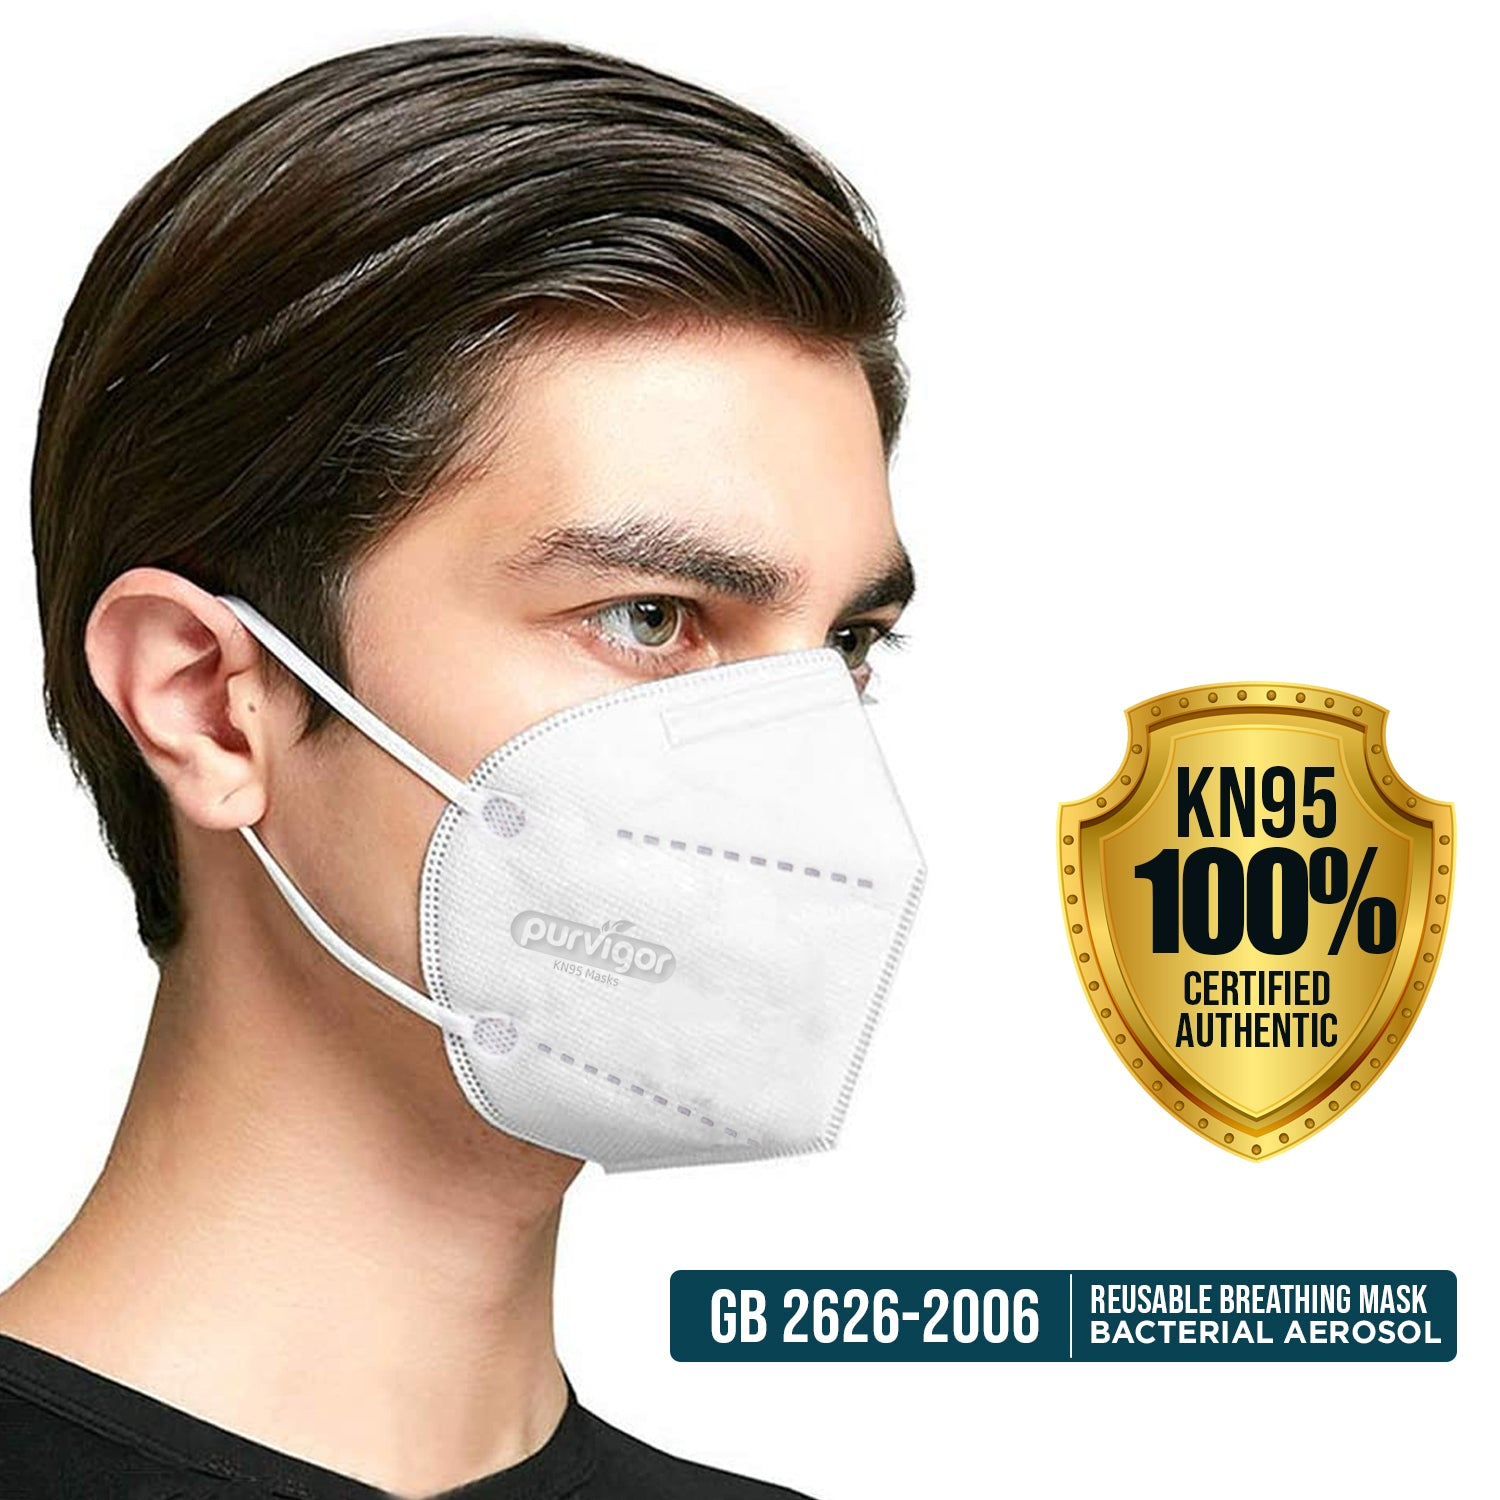 10 Piece KN95 Masks GB2626-2006 Fast Shipping 1-4 Business Days - SOP-TECHNOLOGIES, INC.